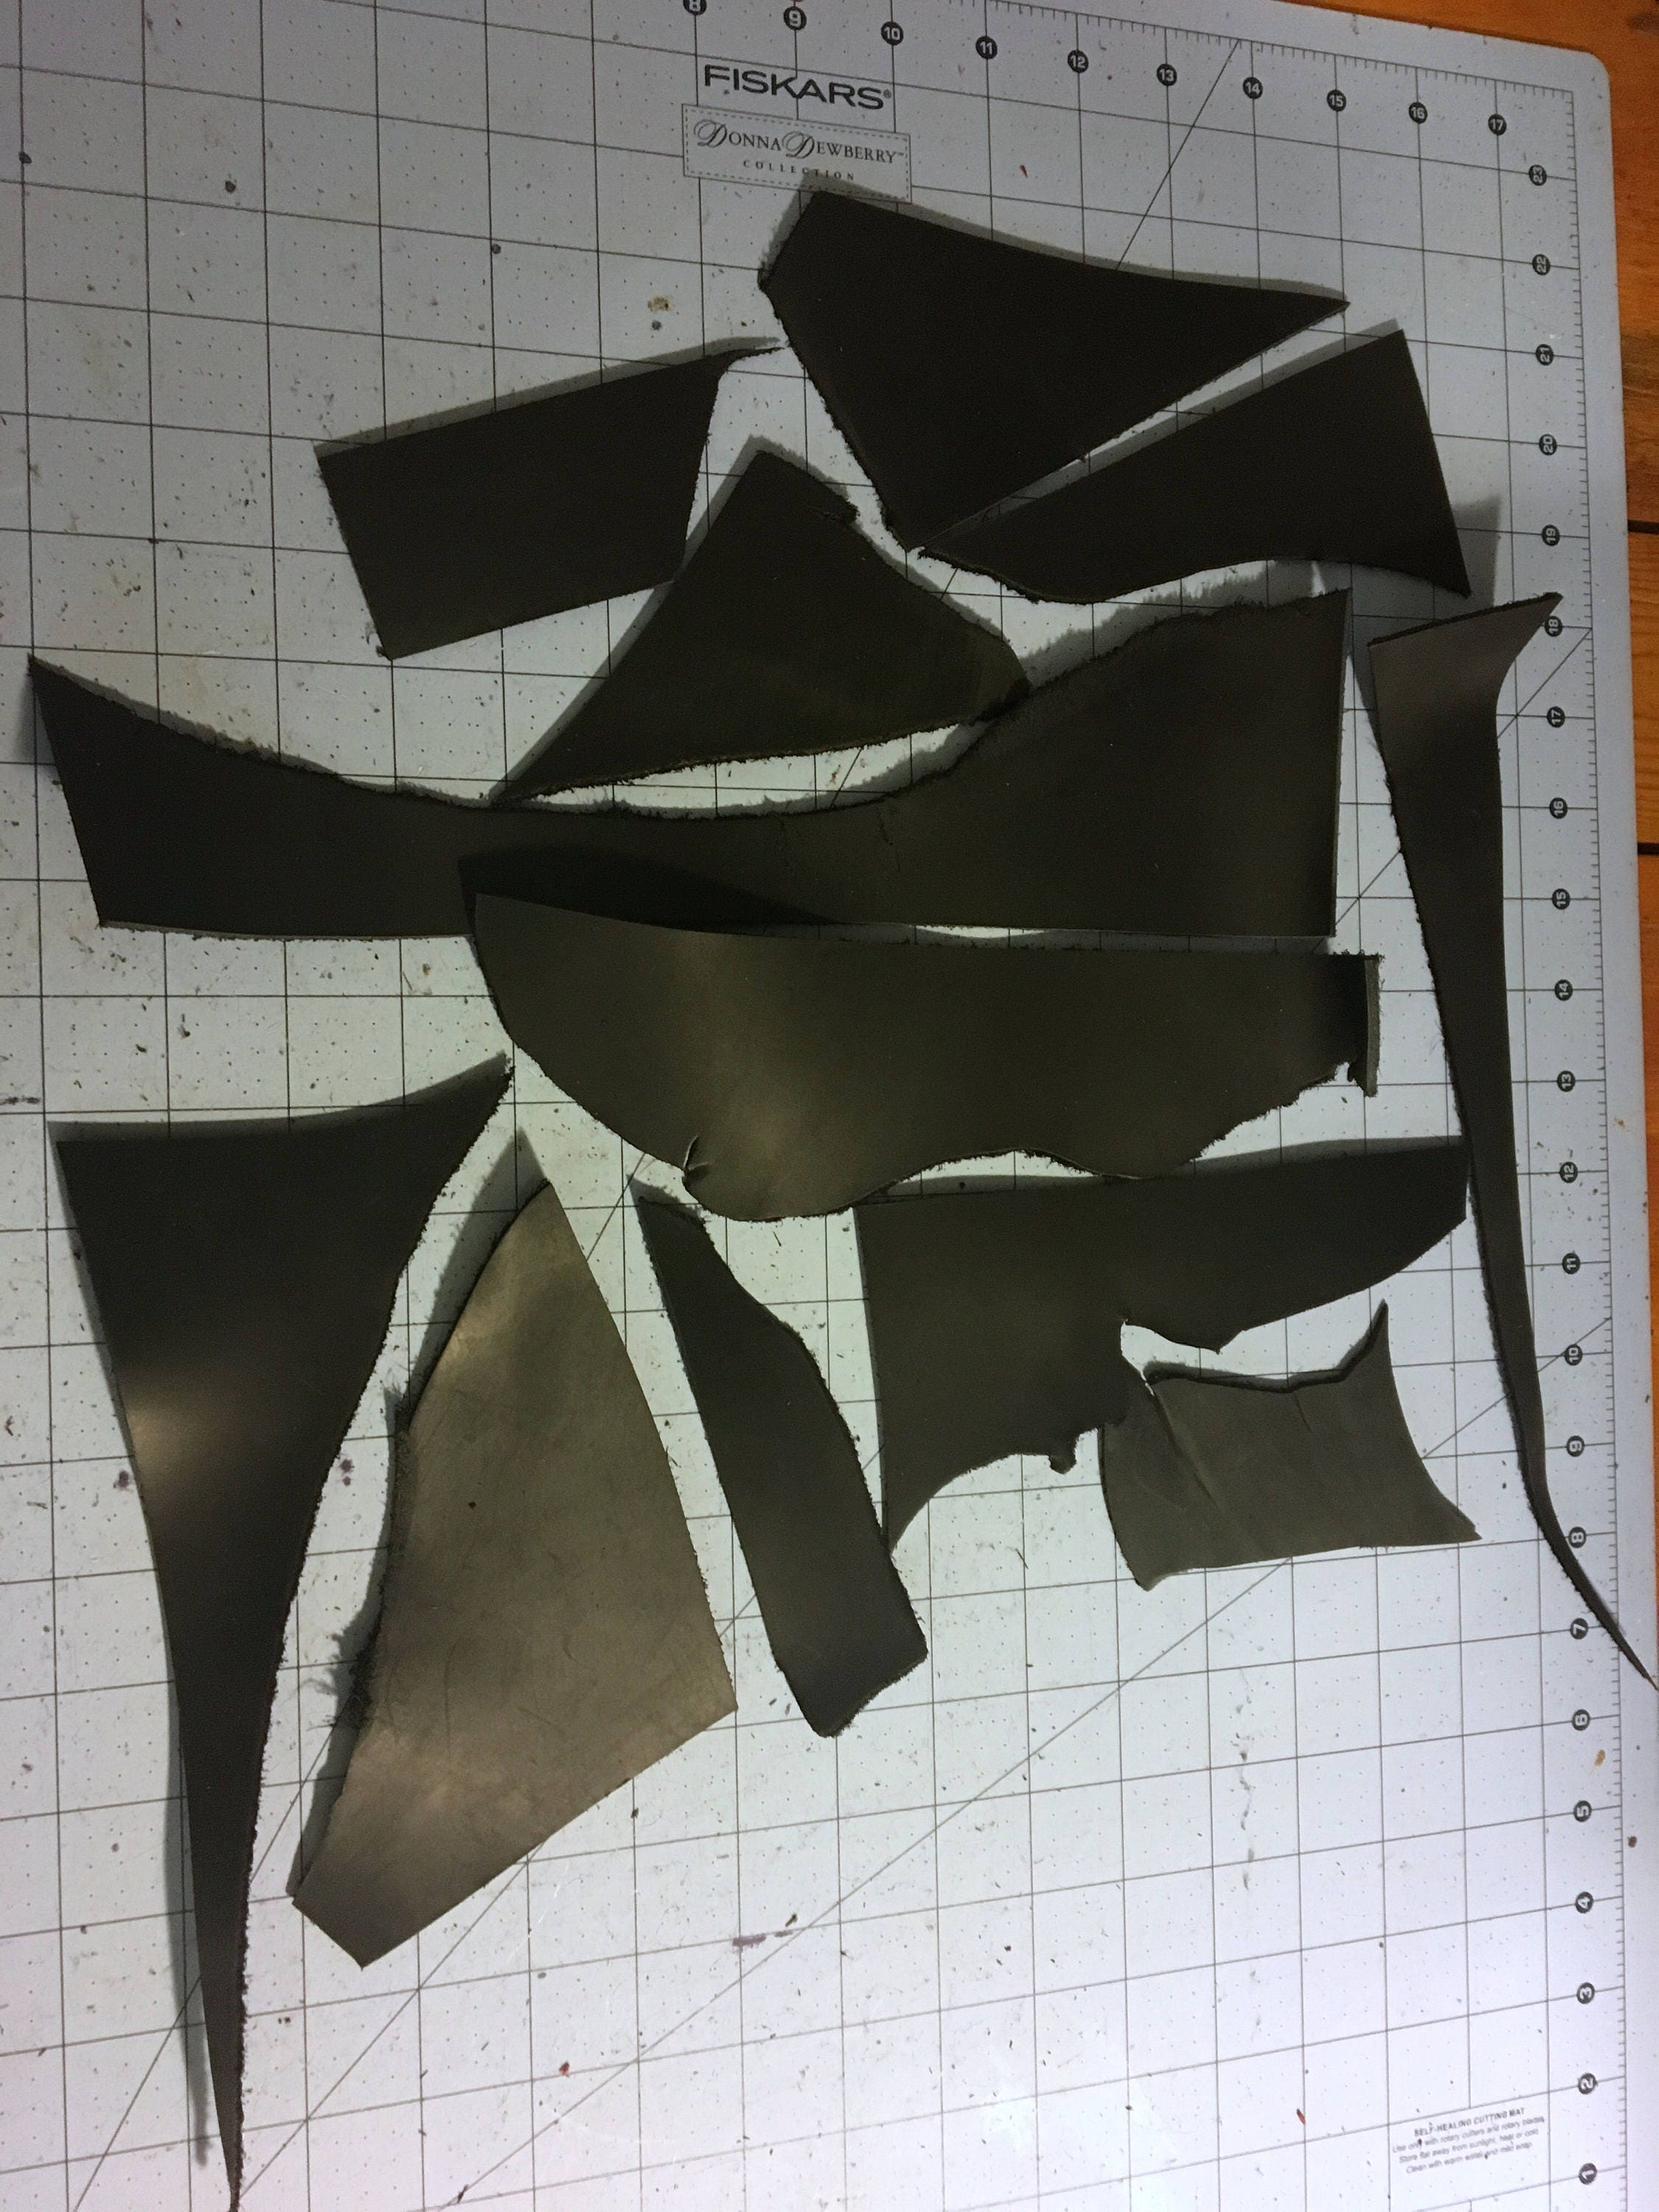 Leather scraps for crafts - Sold By Myfunkycamelot